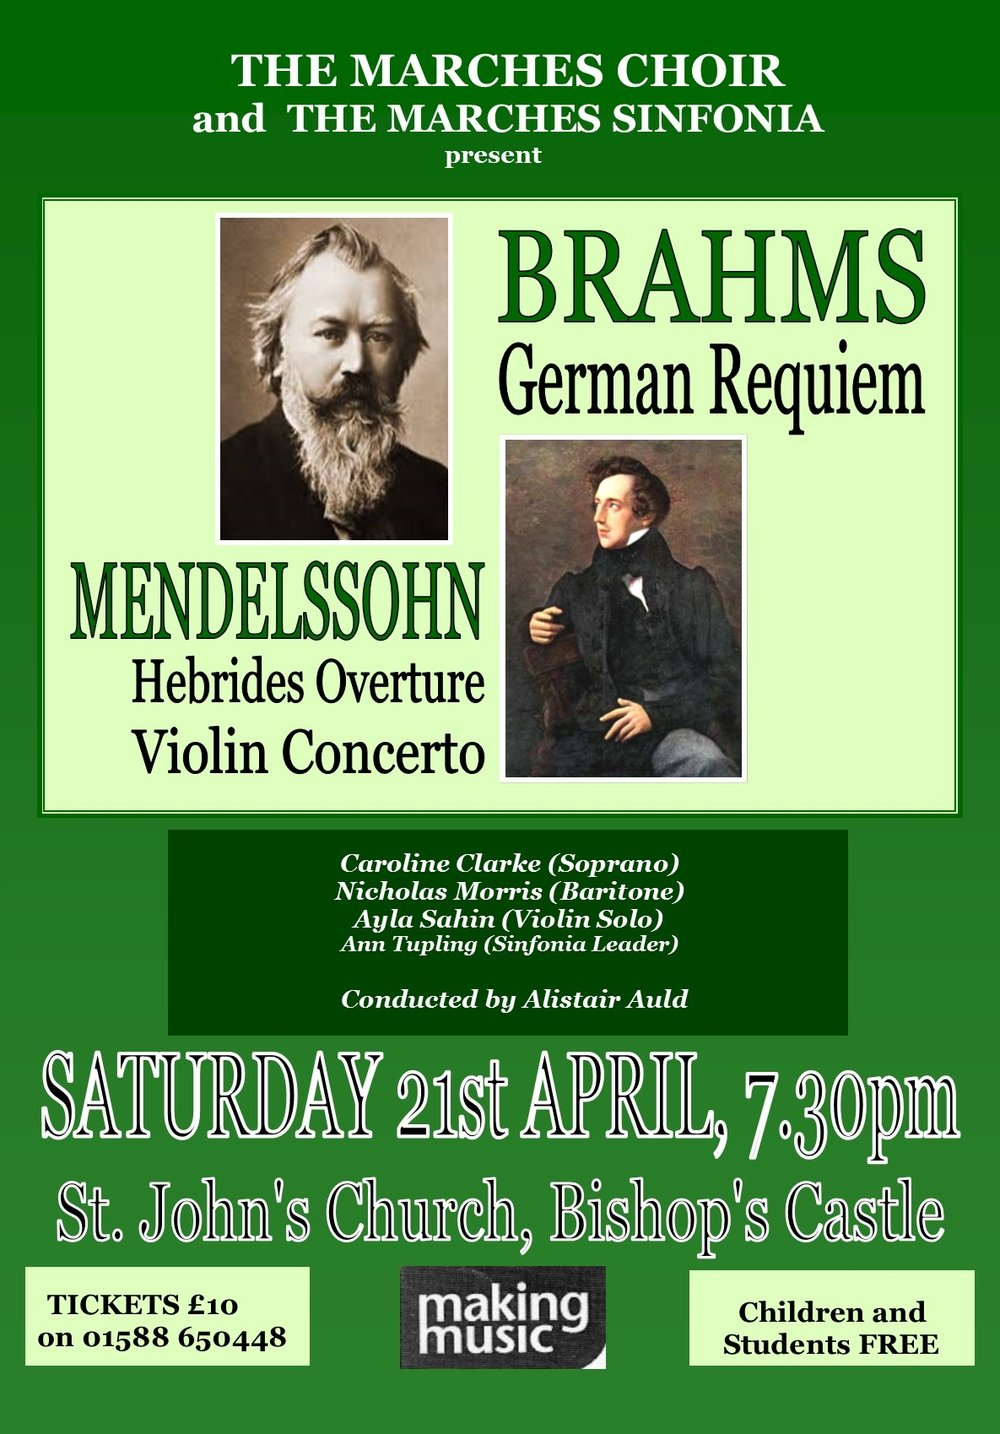 Marches Choir Brahms German Requiem April 18.jpg